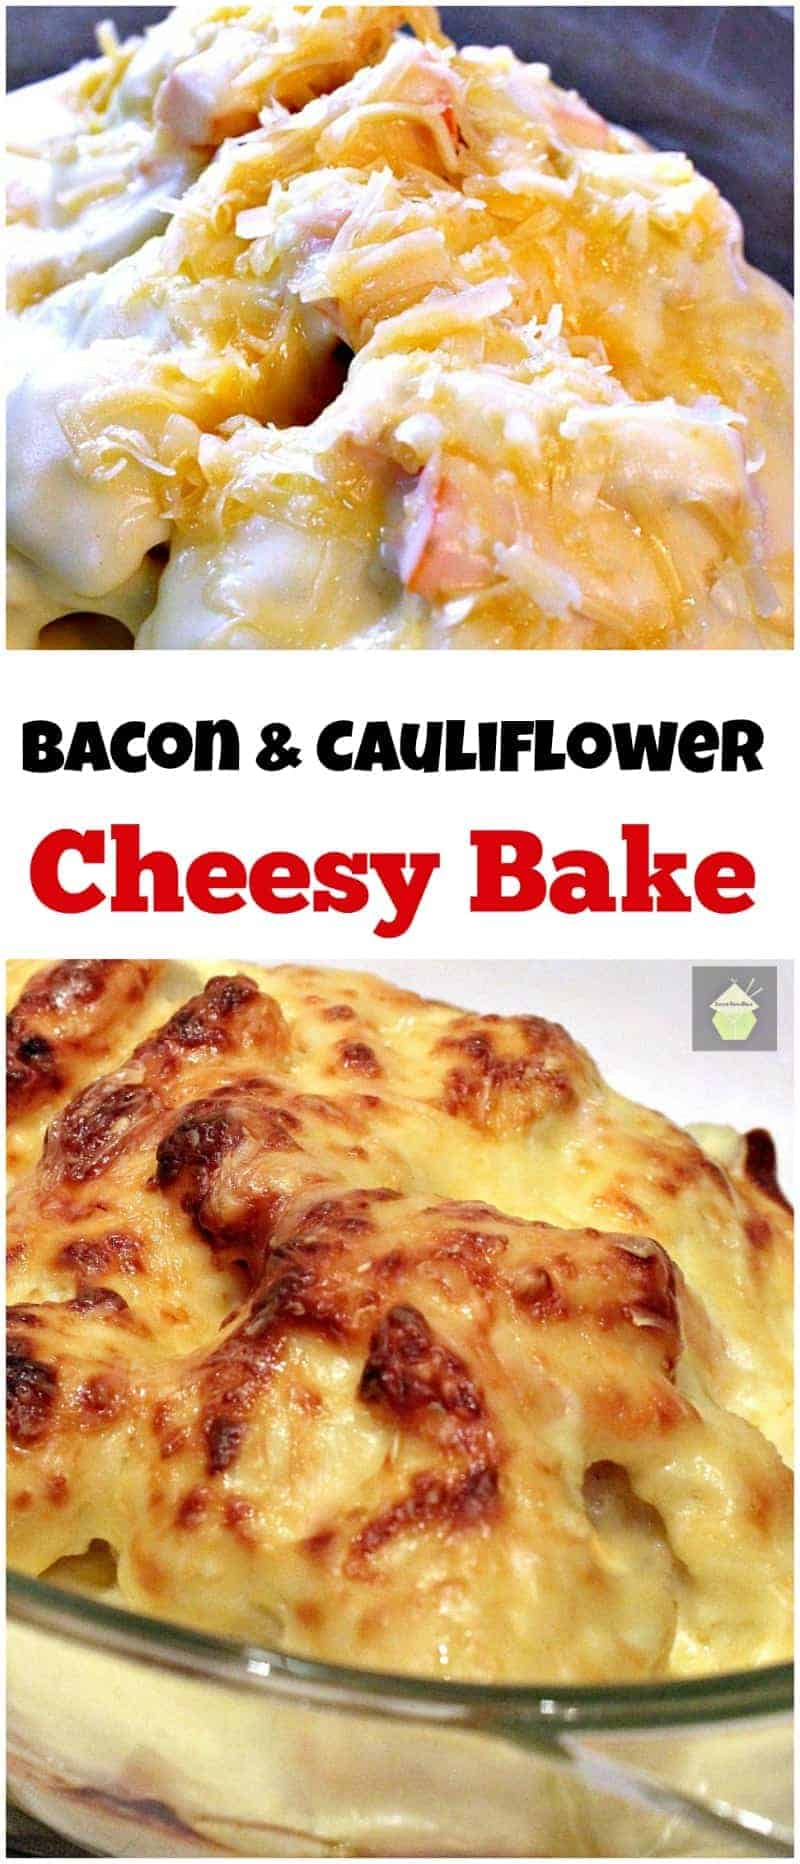 Oh my! Bacon Cauliflower Cheesy Bake. Great flavors all baked in a delicious cheese sauce, made from scratch and so good!